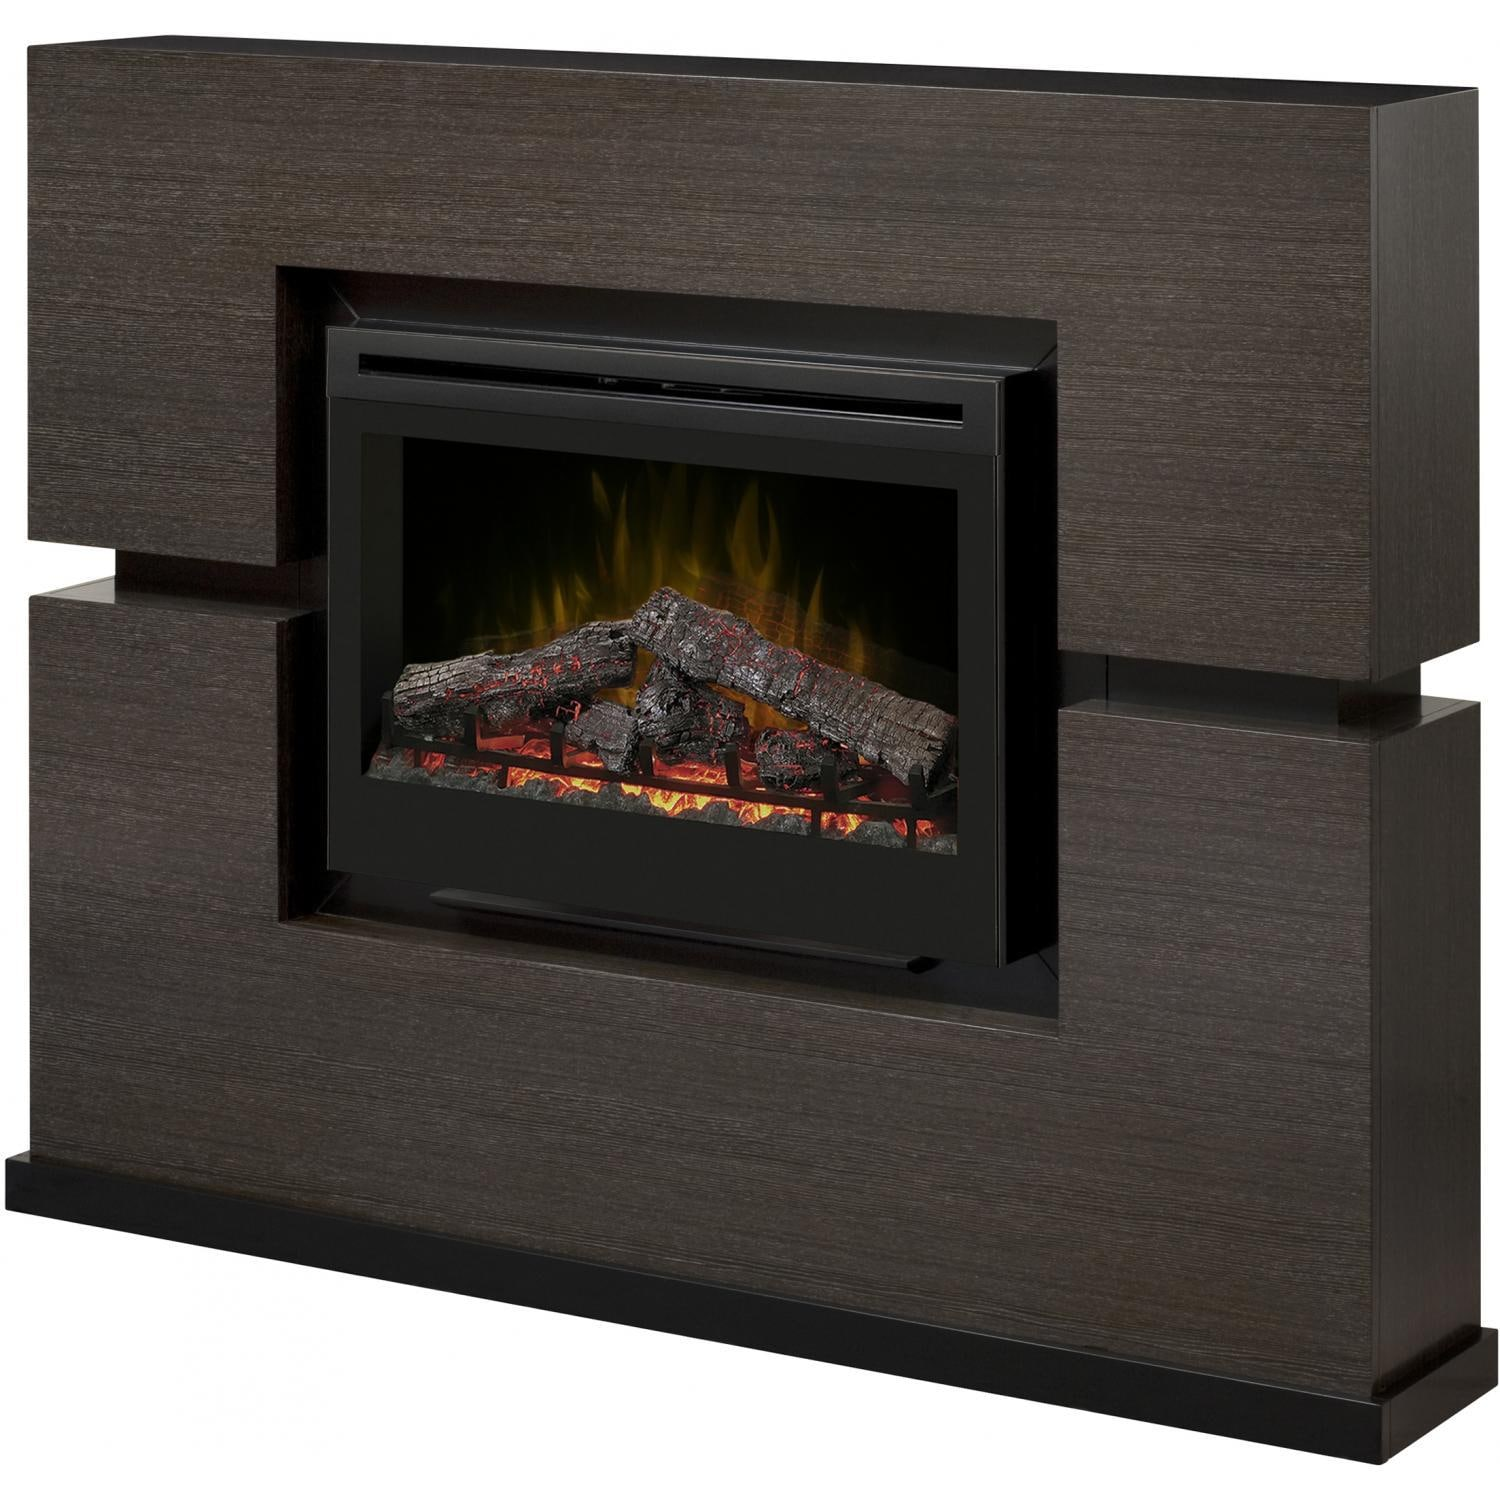 Dimplex electric fireplaces make a statement in any room with quality craftsmanship and a realistic fire. The Linwood electric fireplace from Dimplex features a 33-inch firebox and mantel in a modern rift grey finish. Patented 3D fire technology gives the